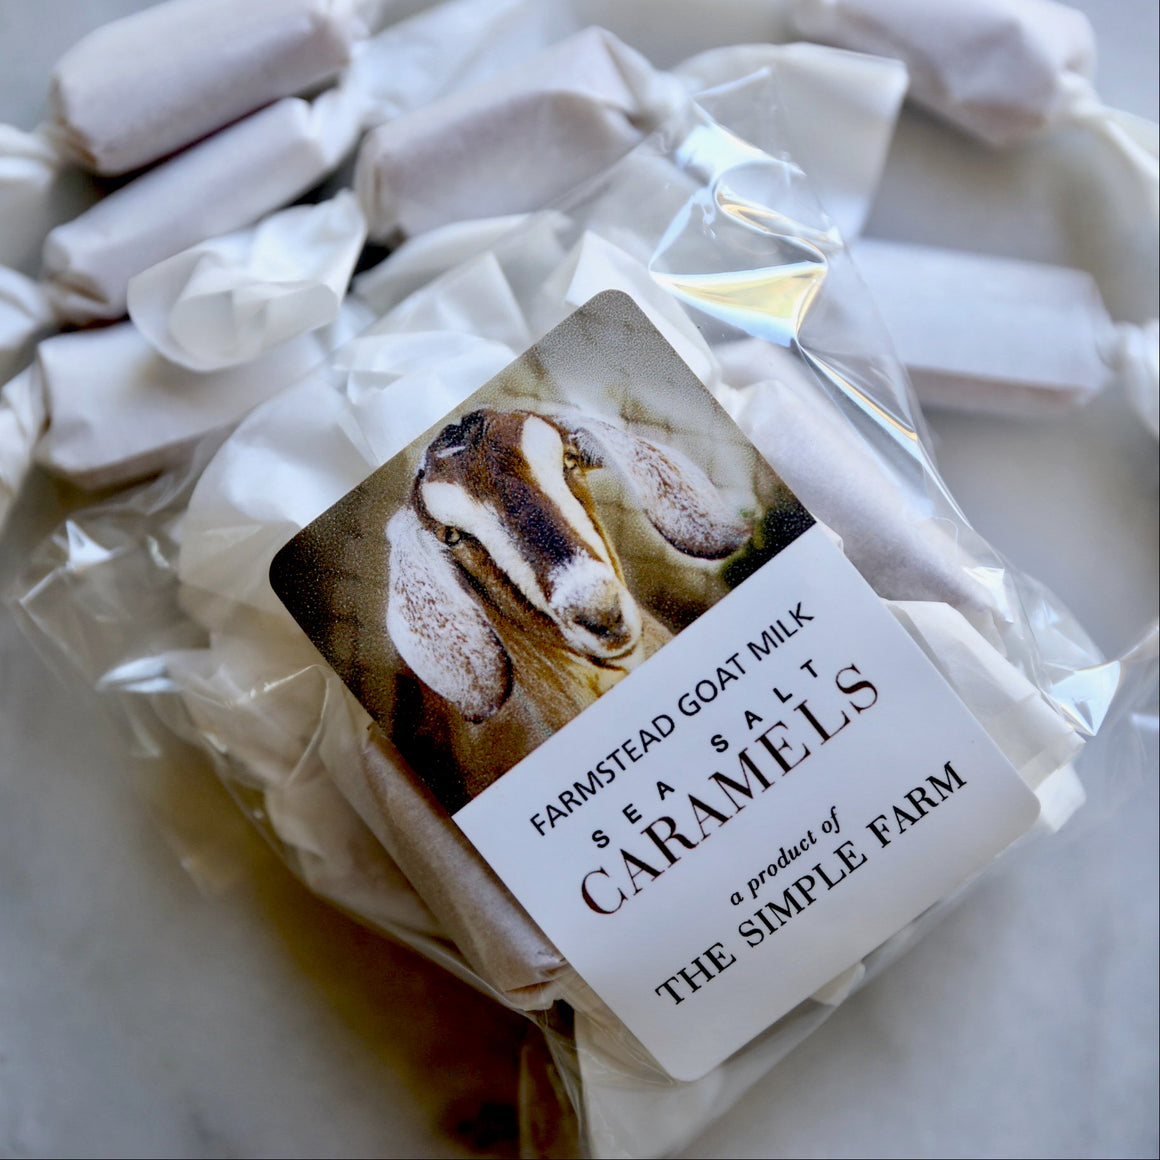 Sea Salt Goat Milk Caramels - Last Ship Day for Month of September is Saturday the 14th. Shop will be closed until September 28th for vacation.